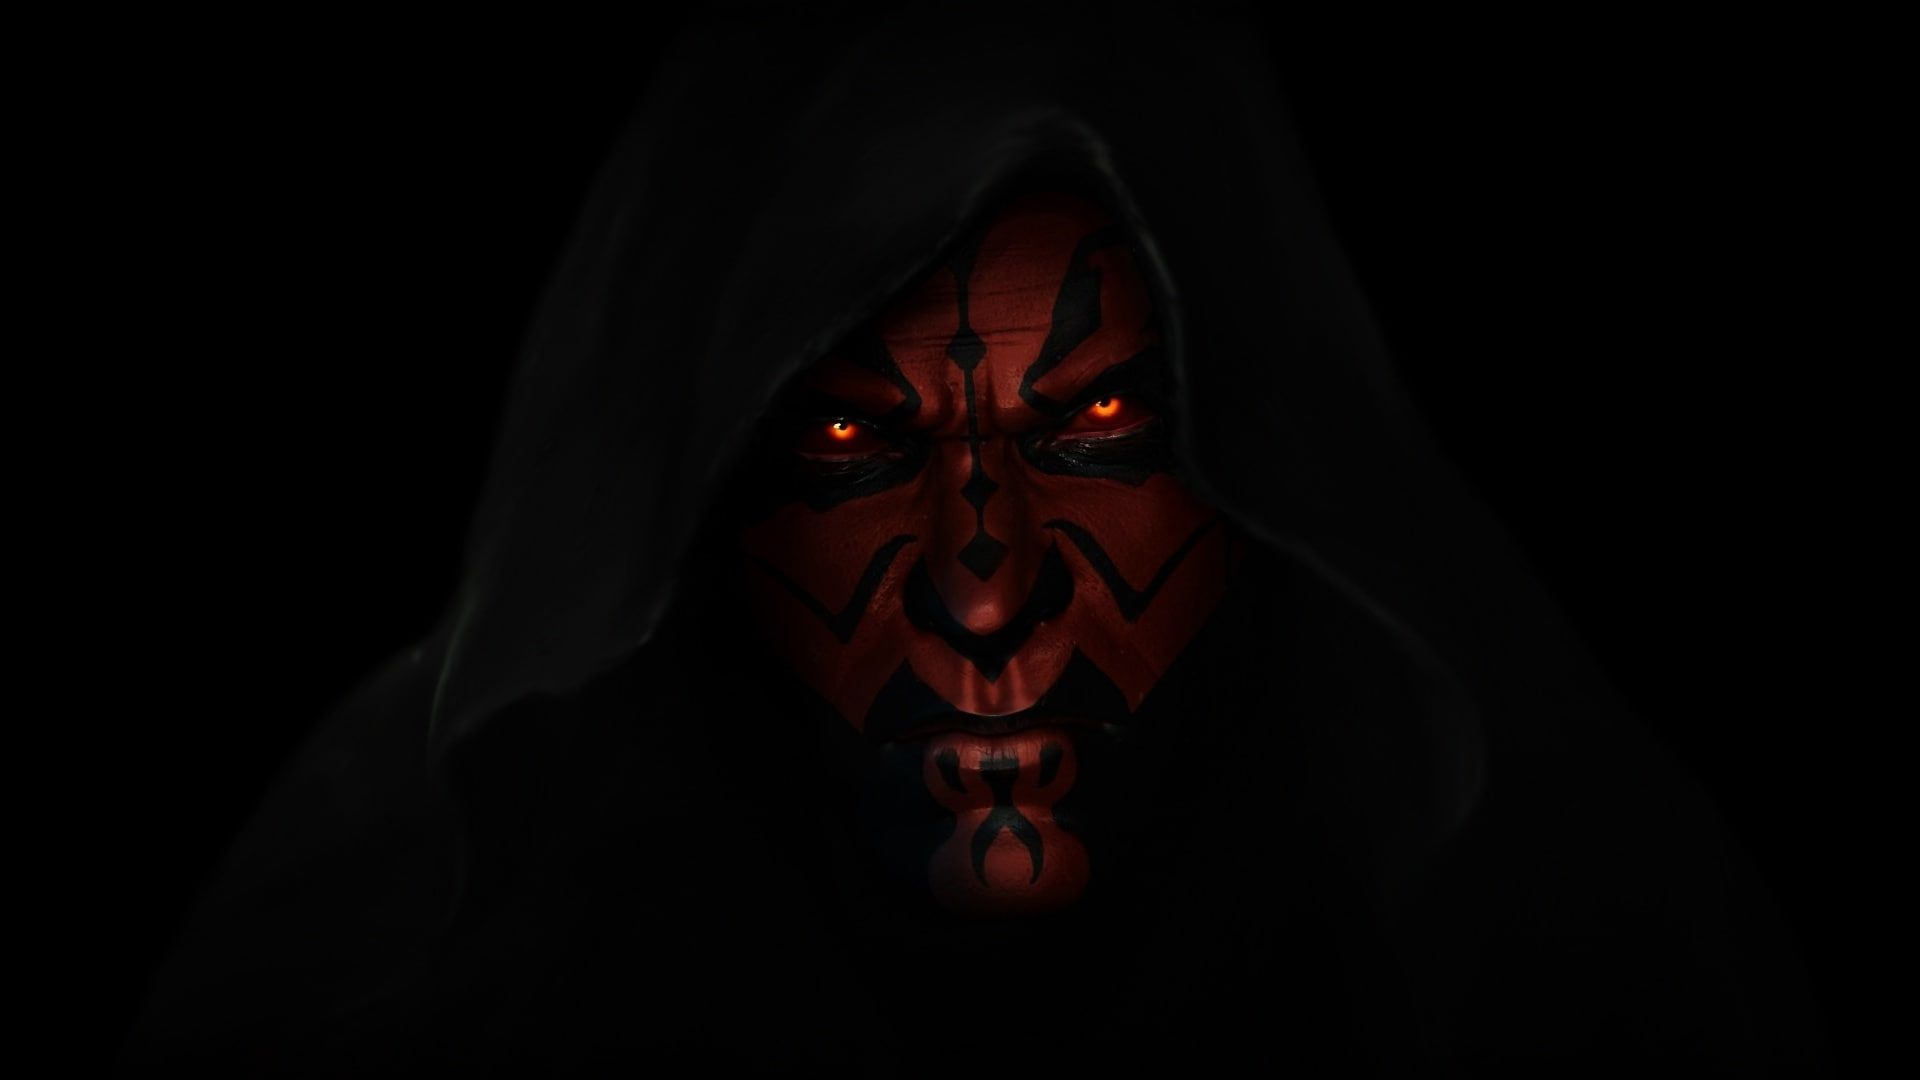 Person Wearing Hood Wallpaper Star Wars Darth Maul A Sith Lord Dark Lord Of The Sith 1080p Wallpaper Hdwallp Hood Wallpapers Darth Maul Wallpaper Darth Maul